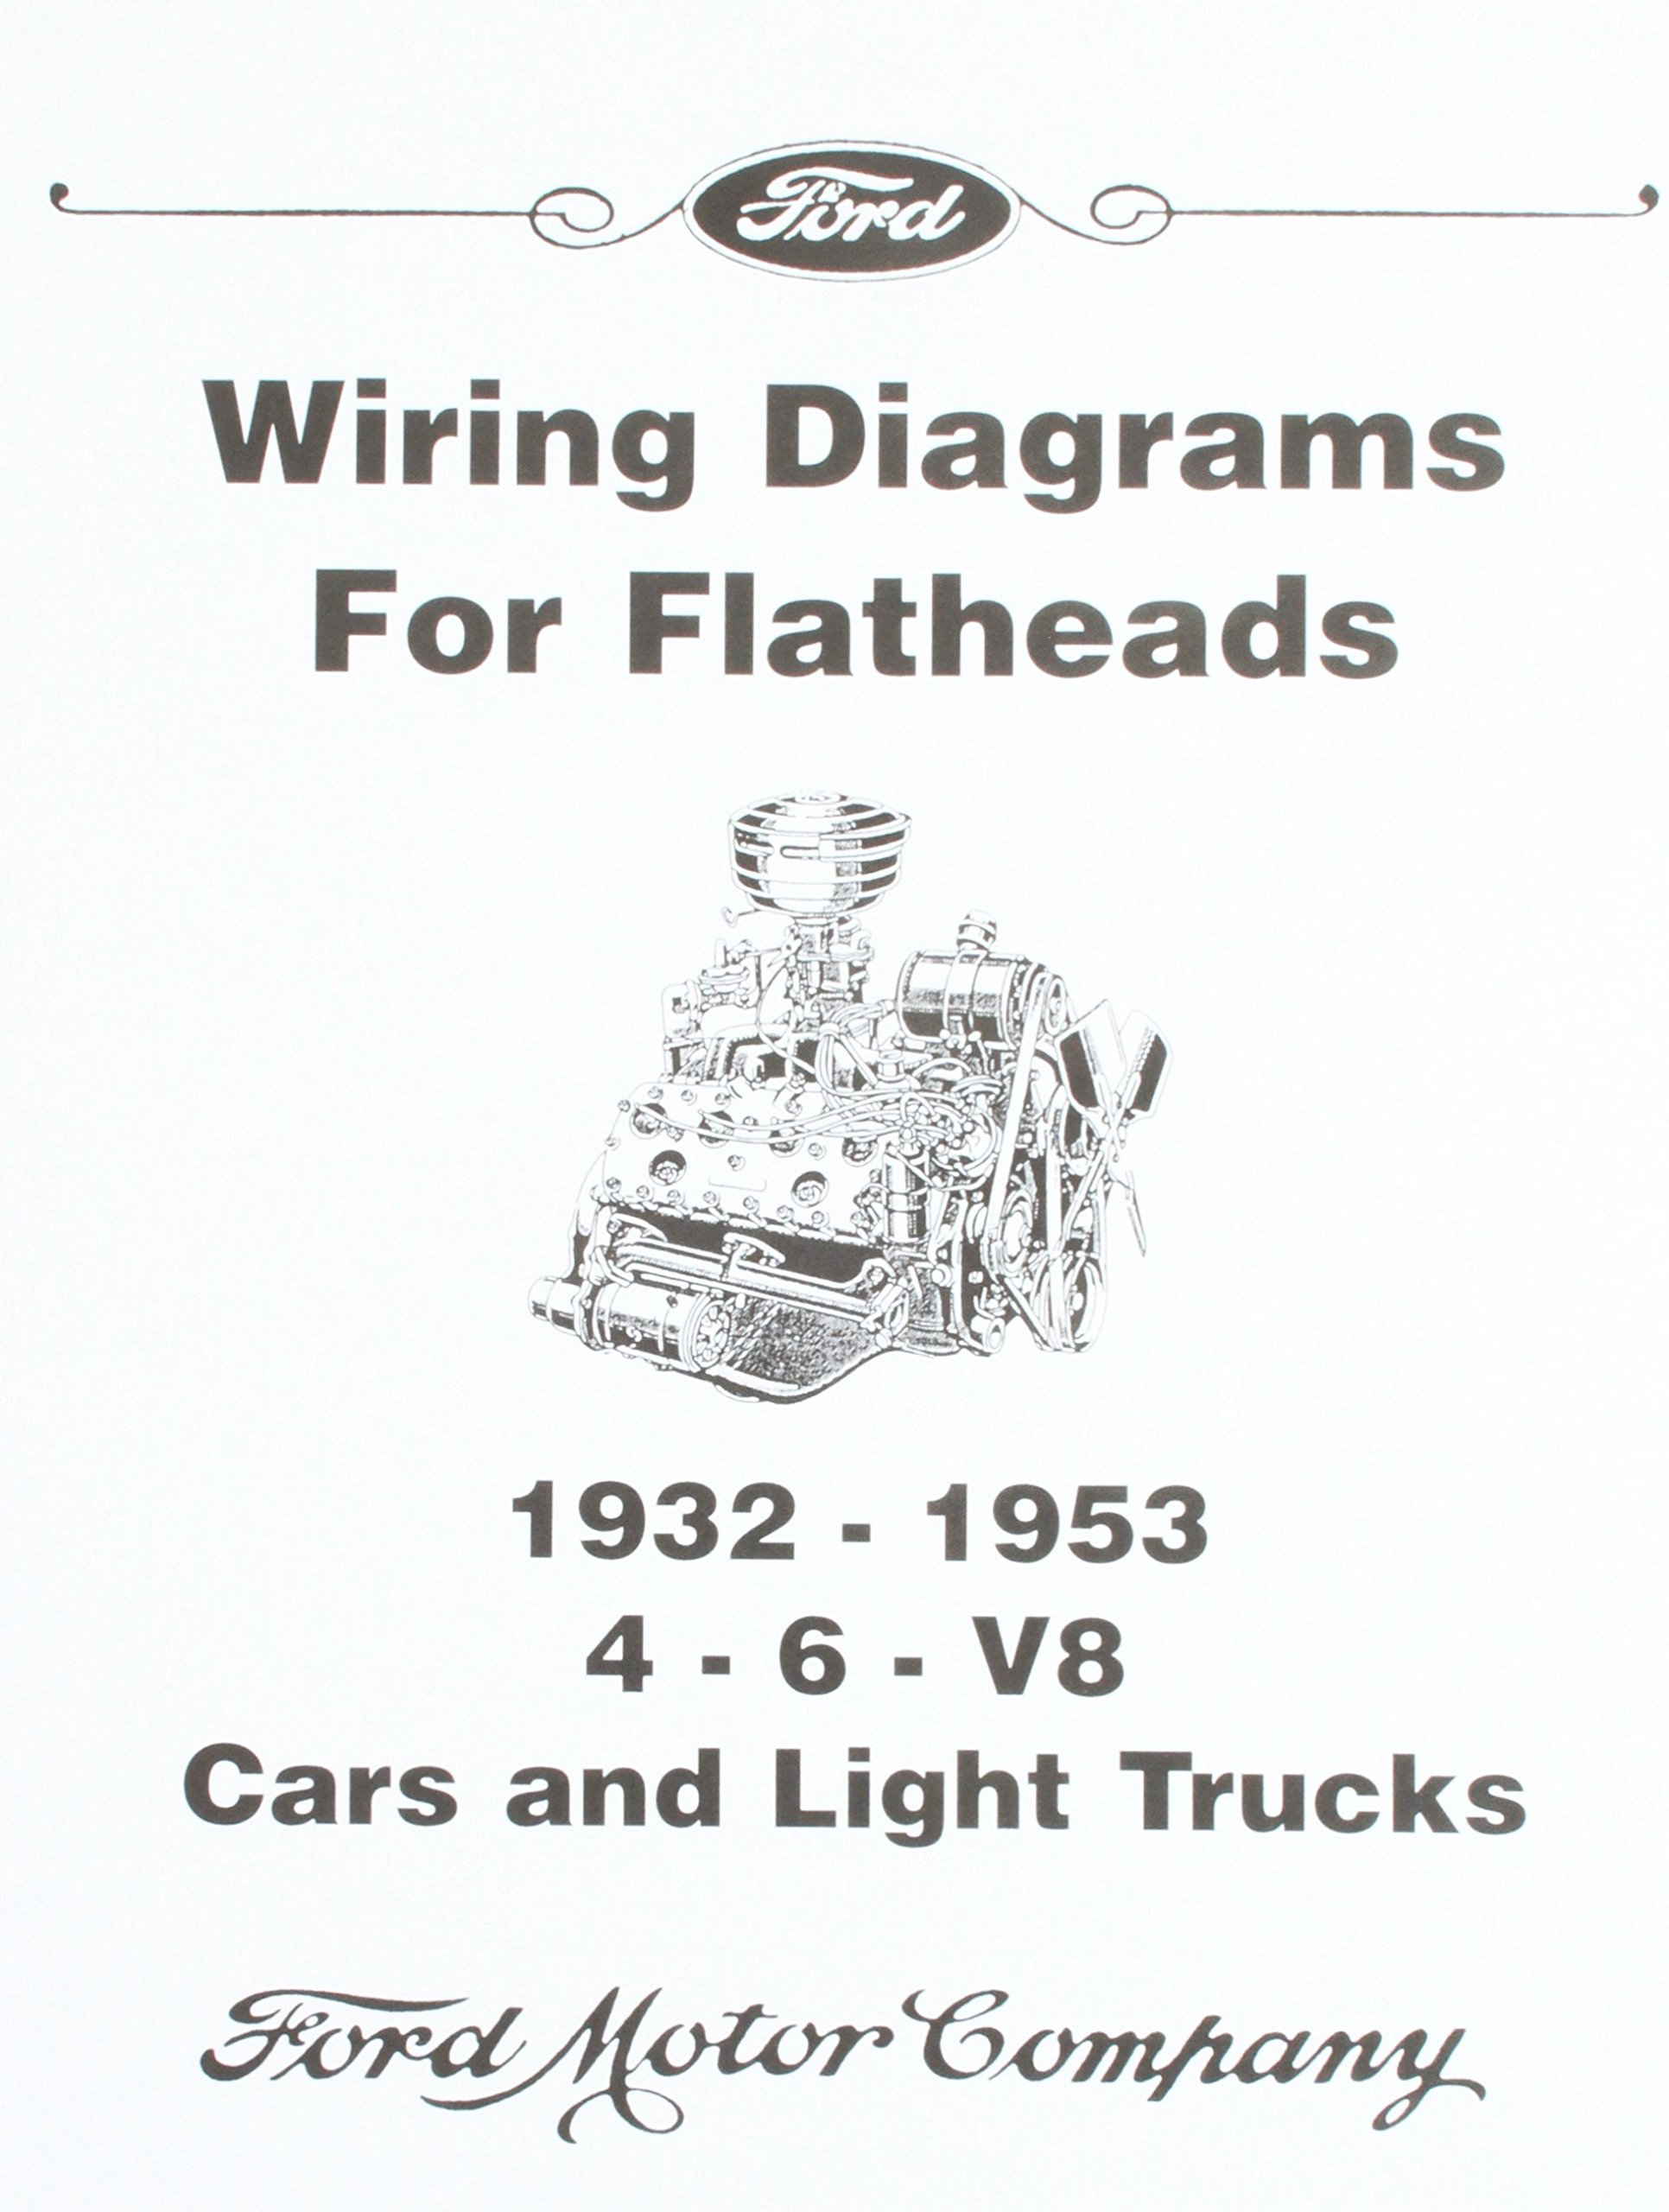 How To Wire A 53 Ford Starter Solenoid Diagram V8 Wiring Electrical Diagrams Flathead Auto U2022 Tractor